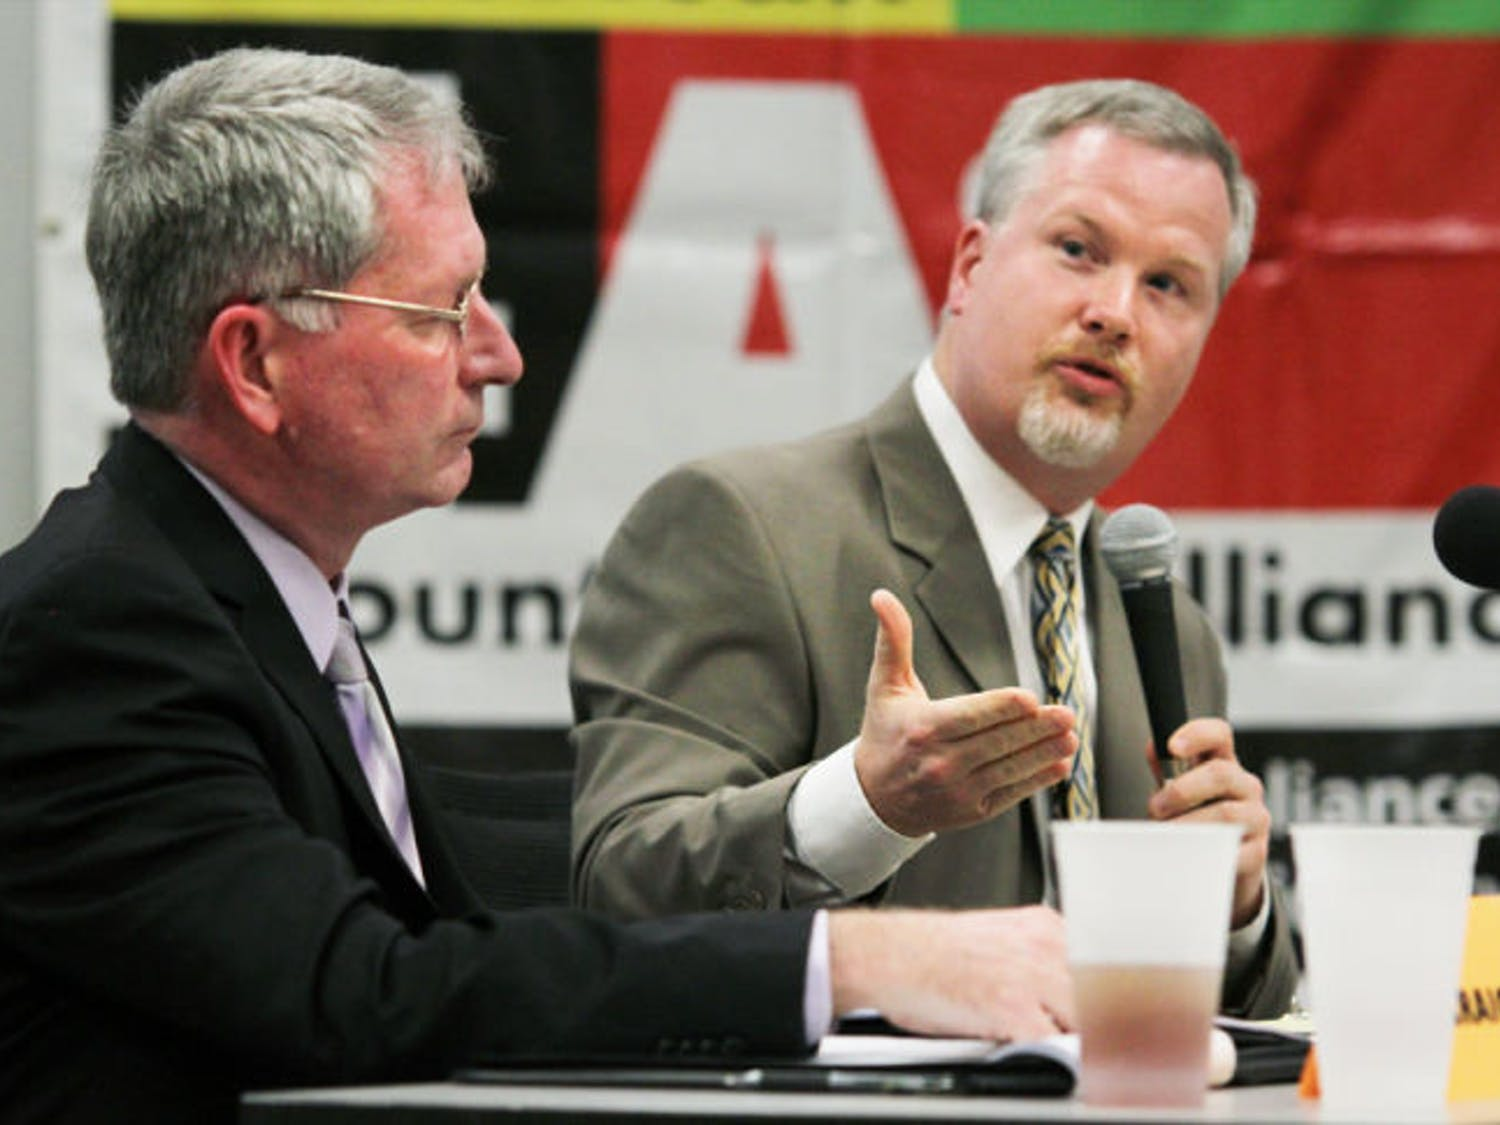 Gainesville mayor Craig Lowe listens to opponent Ed Braddy's rebuttal during a candidate forum at the Alachua County Health Department on Monday night. Read the story on page 4.